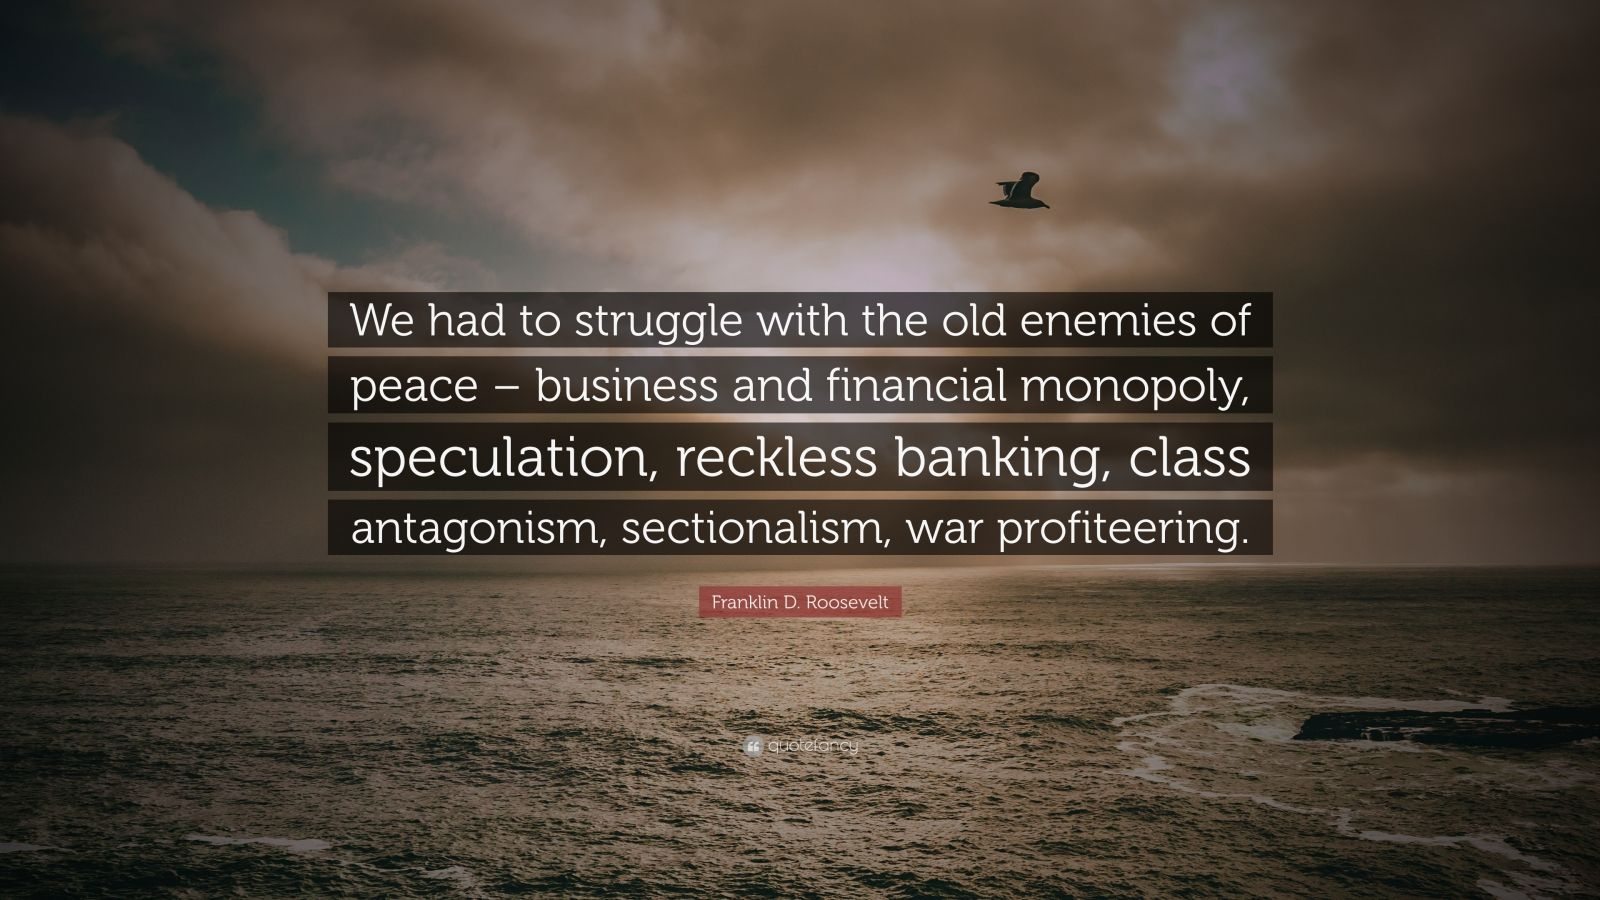 """Franklin D. Roosevelt Quote: """"We had to struggle with the old enemies of peace – business and financial monopoly, speculation, reckless banking, class antagonism, sectionalism, war profiteering."""""""